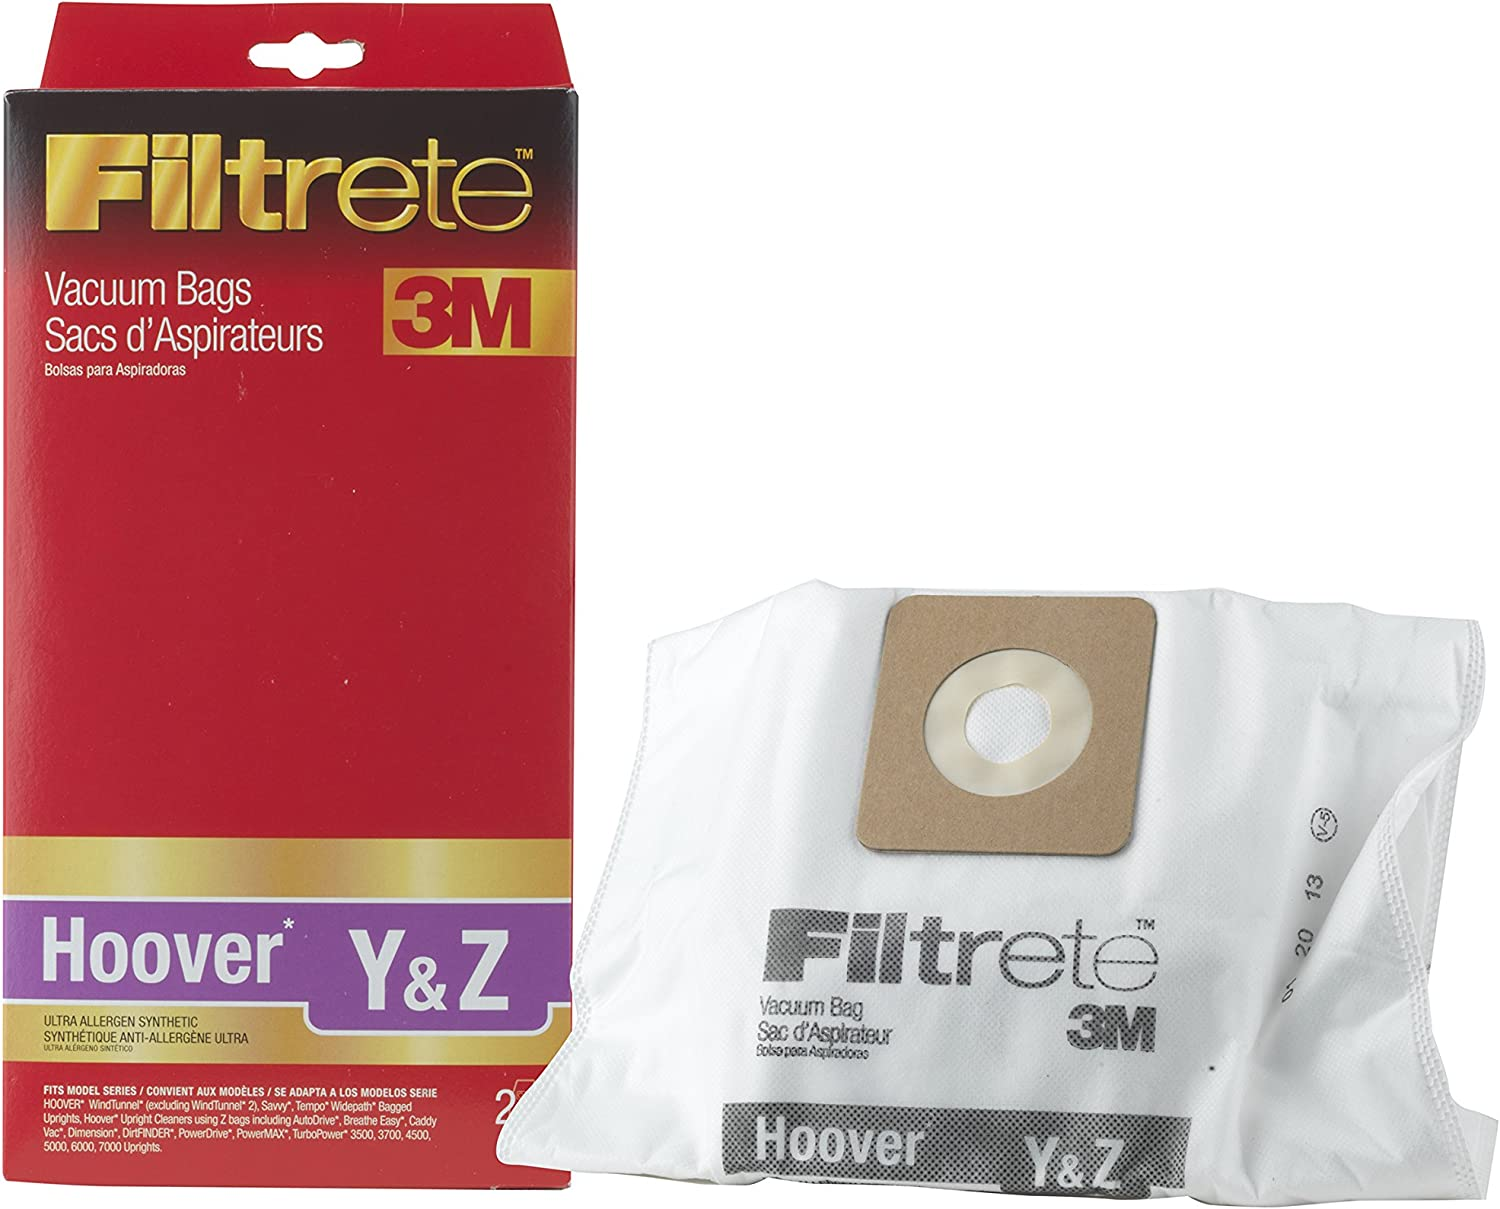 3M Filtrete Hoover Y Z Synthetic Bag Ultra Allergen Vacuum Max 68% OFF Lowest price challenge